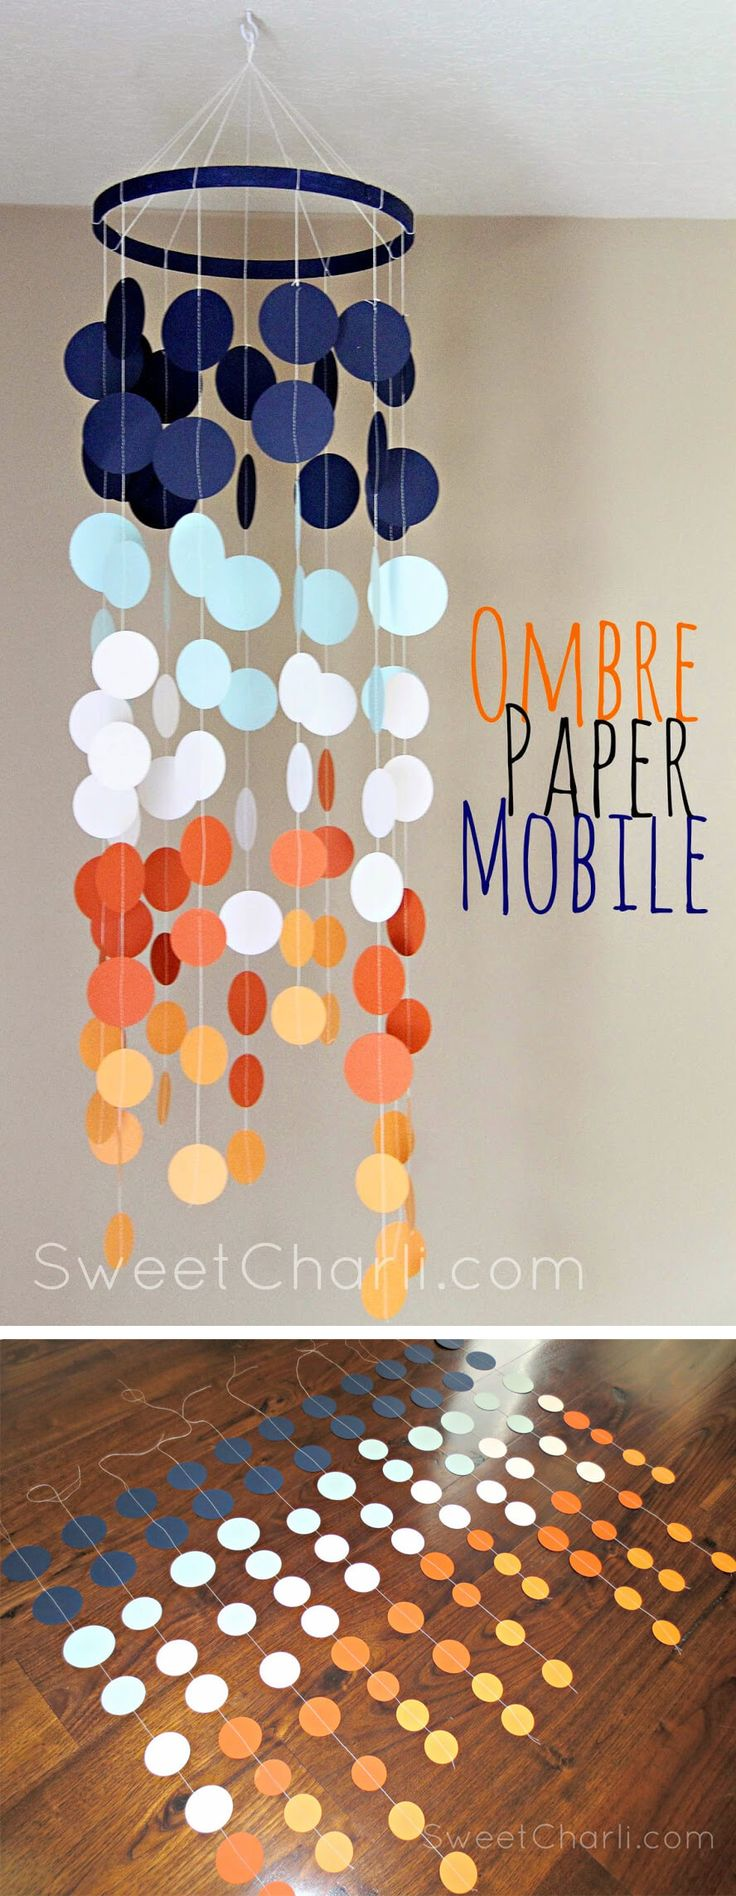 Easy DIY Ombre Paper Mobile